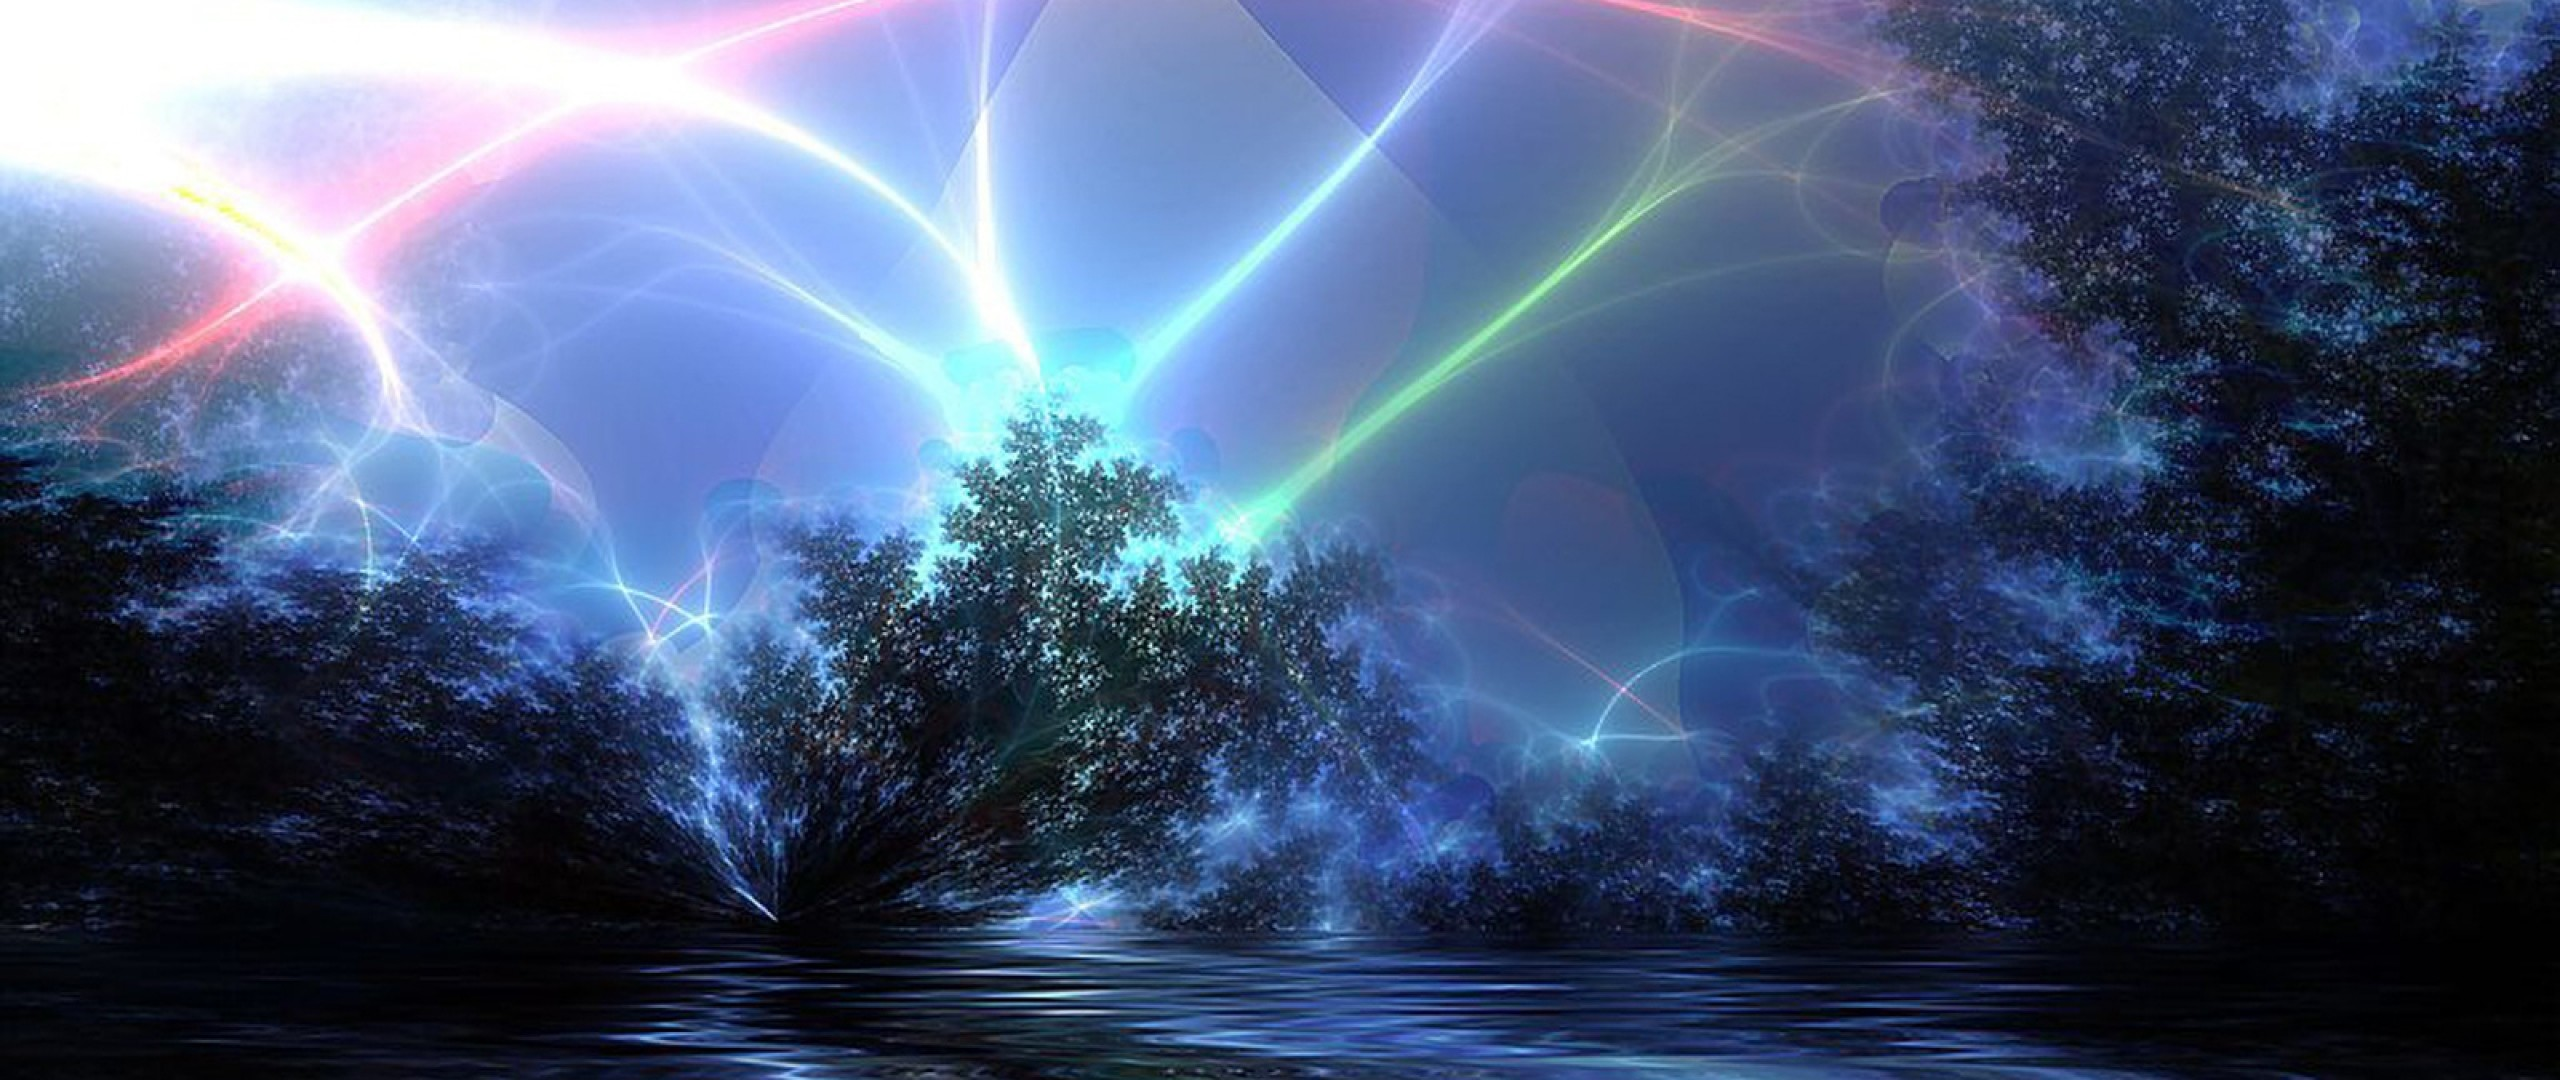 trippy nature wallpaper 62 images